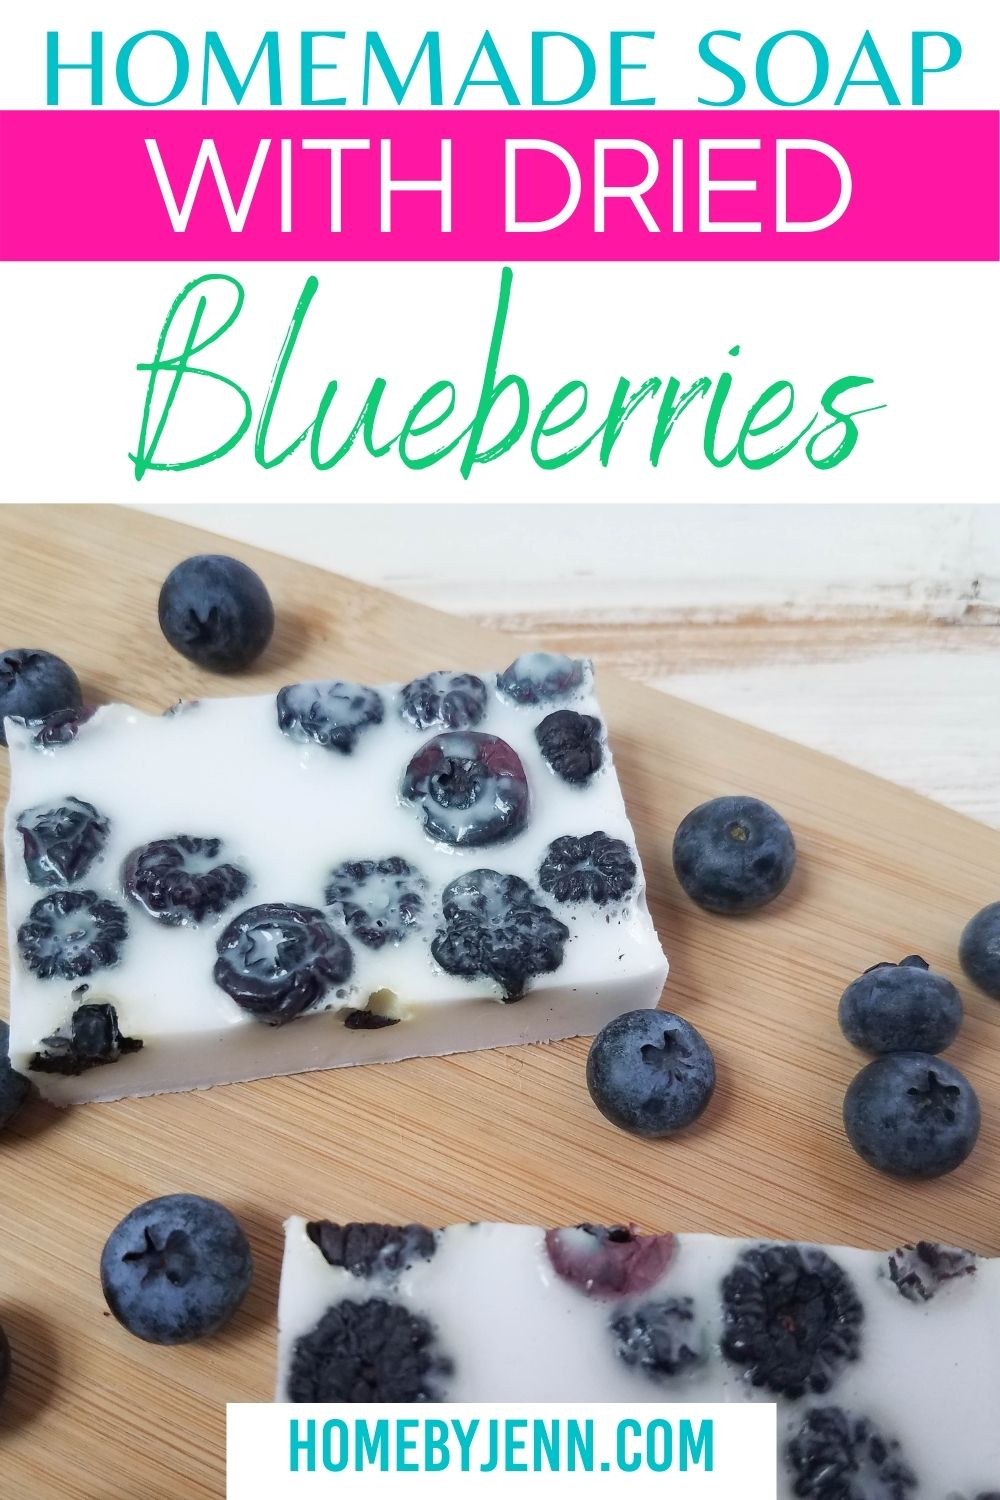 This homemade soap recipe is so simple and easy to make! All you need are a few ingredients and it will be done in no time at all! Plus, with the addition of dried blueberries, it smells amazing as well! #homemade #DIY #homemadesouprecipes #blueberry #skincare #beauty via @homebyjenn